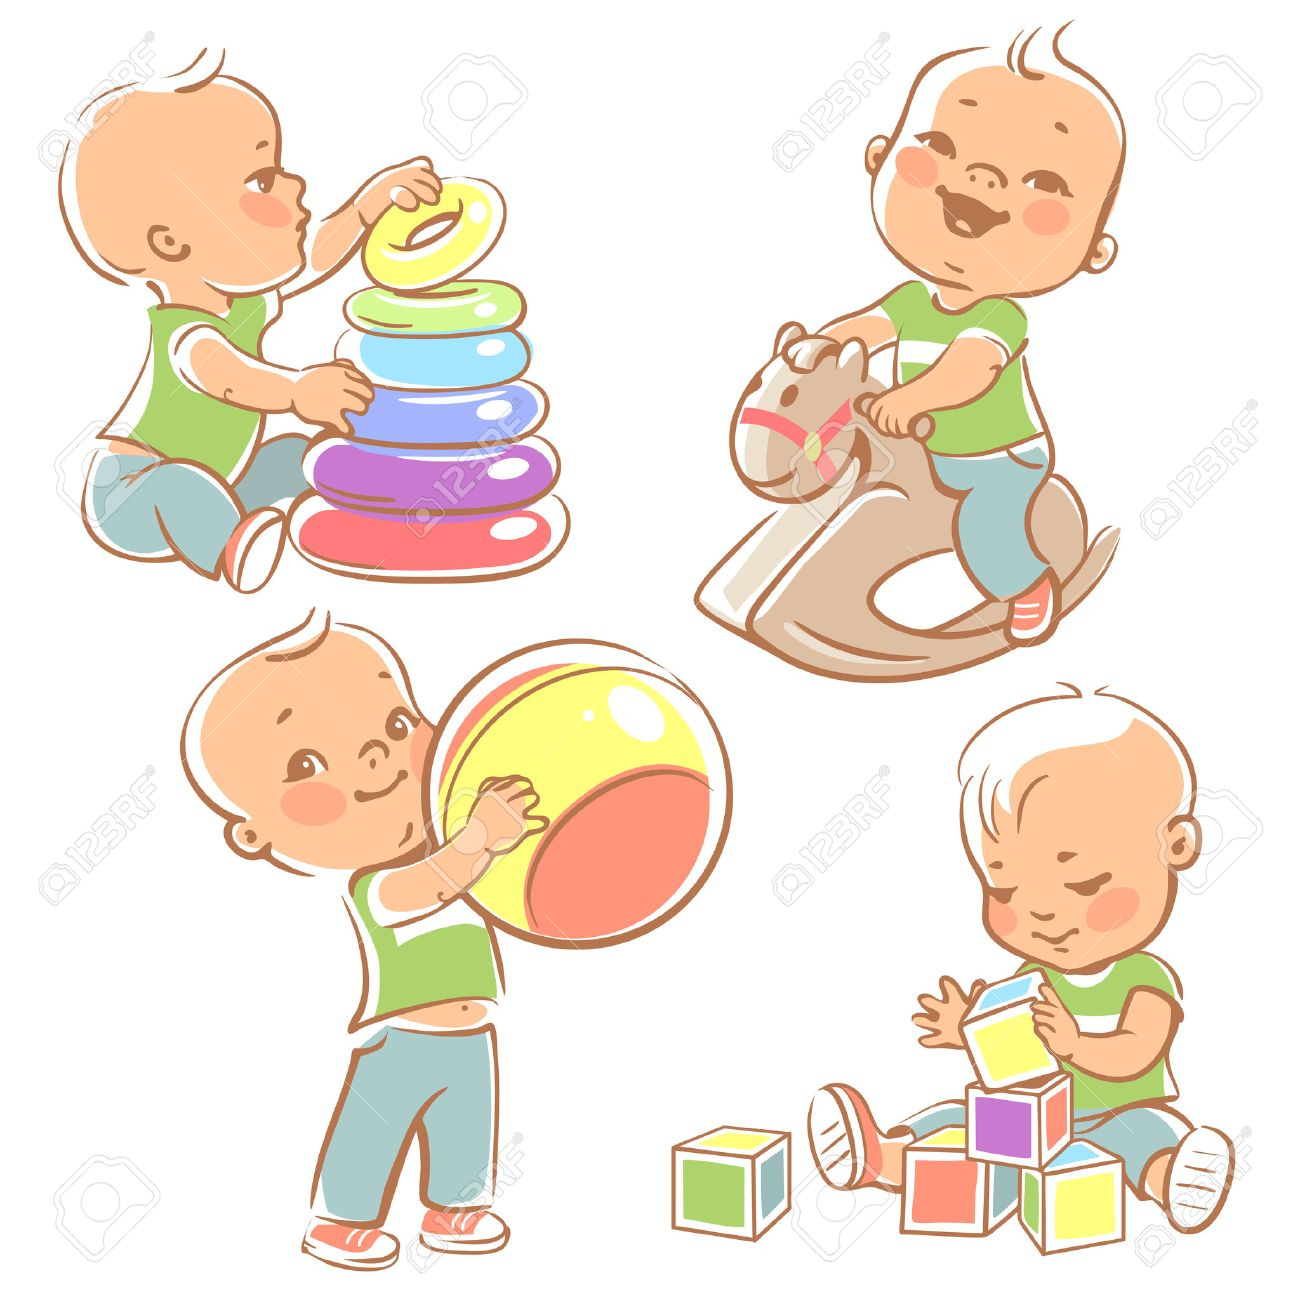 Children play with toys. Little baby boy riding a wooden horse. Kid with pyramid, boy holding a ball. Baby builds a house with cubes. Toys and games for one year old kid. Colorful illustration. - 52240642